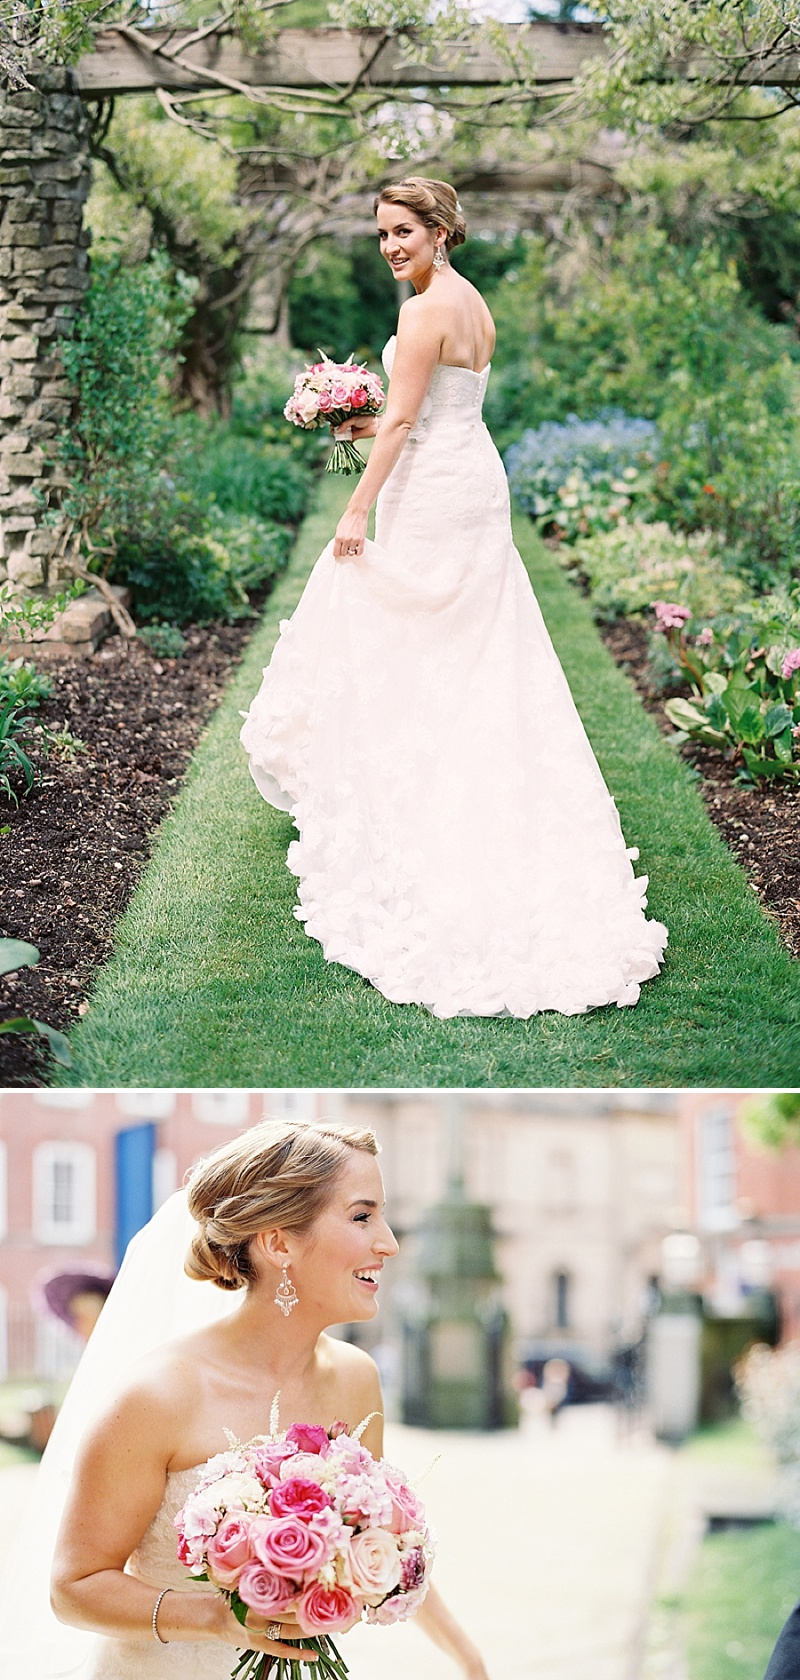 A Spring Themed Wedding at Swancar Farm, Nottinghamshire, Bride in Fairy by Enzoani with No 1 by Jenny Packham shoes, images by Depict Photography_0007